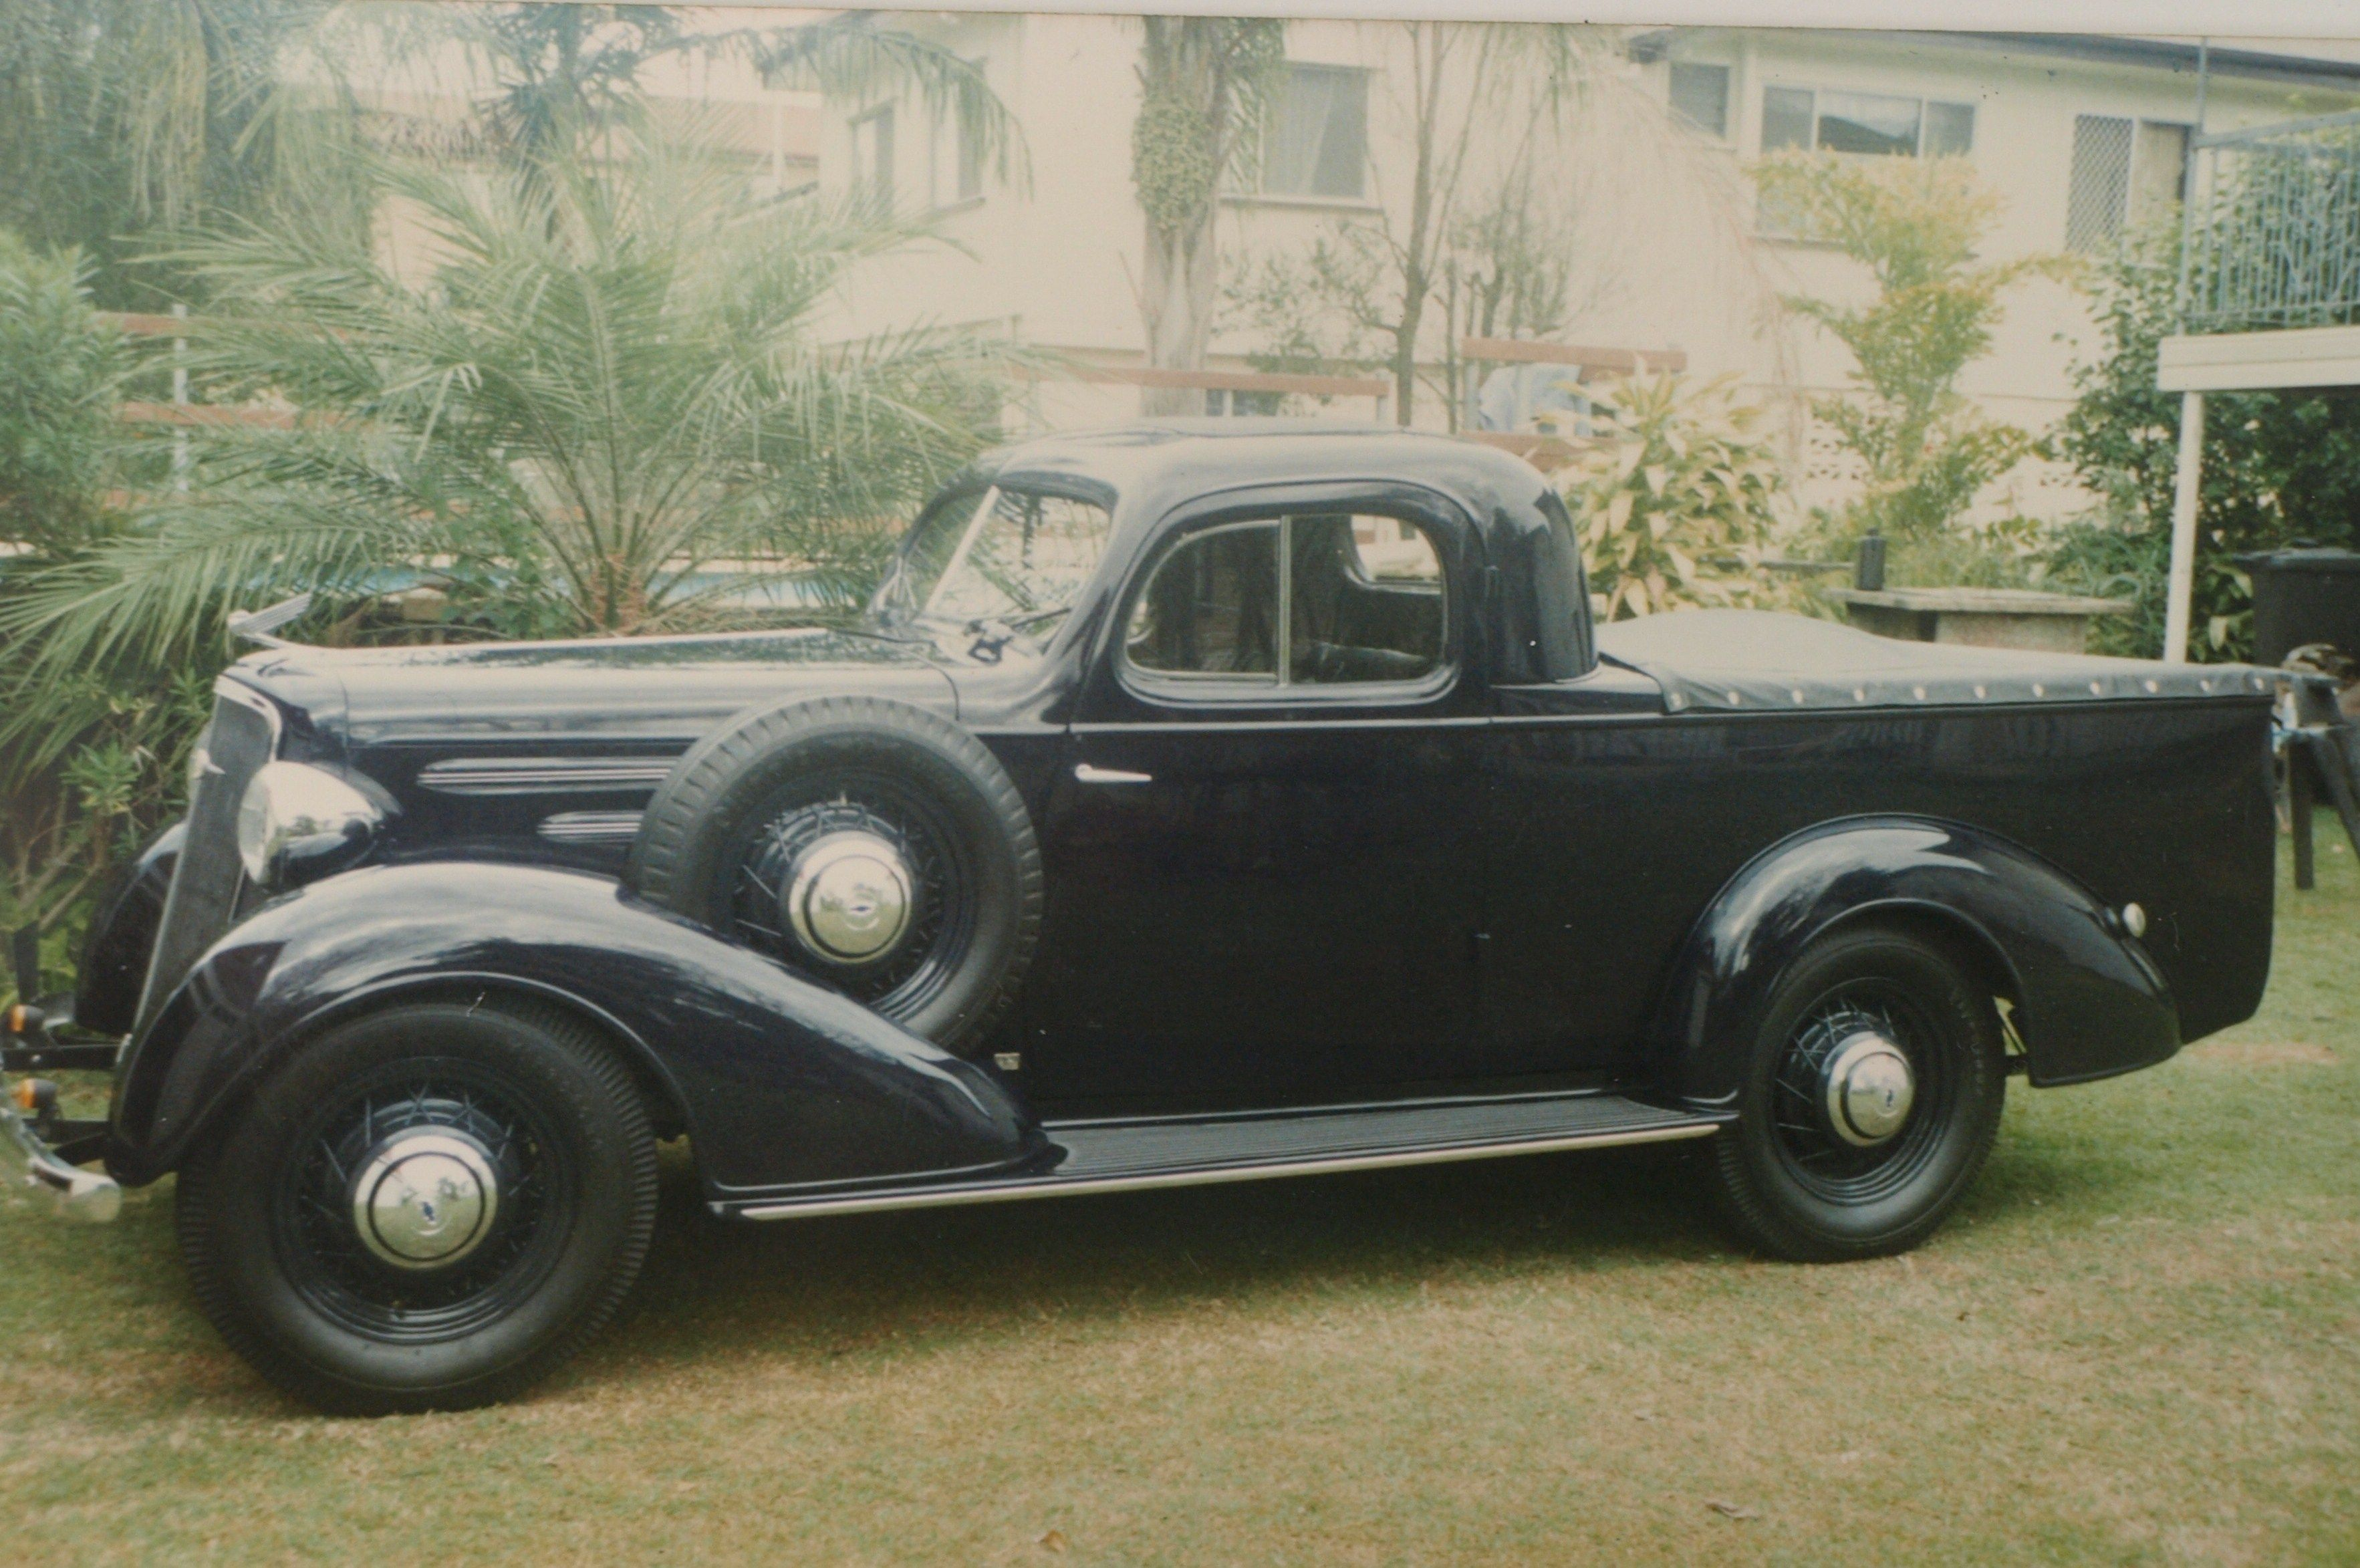 1935 Master Deluxe Chev Coupe Ute  Very rare ,restored to a